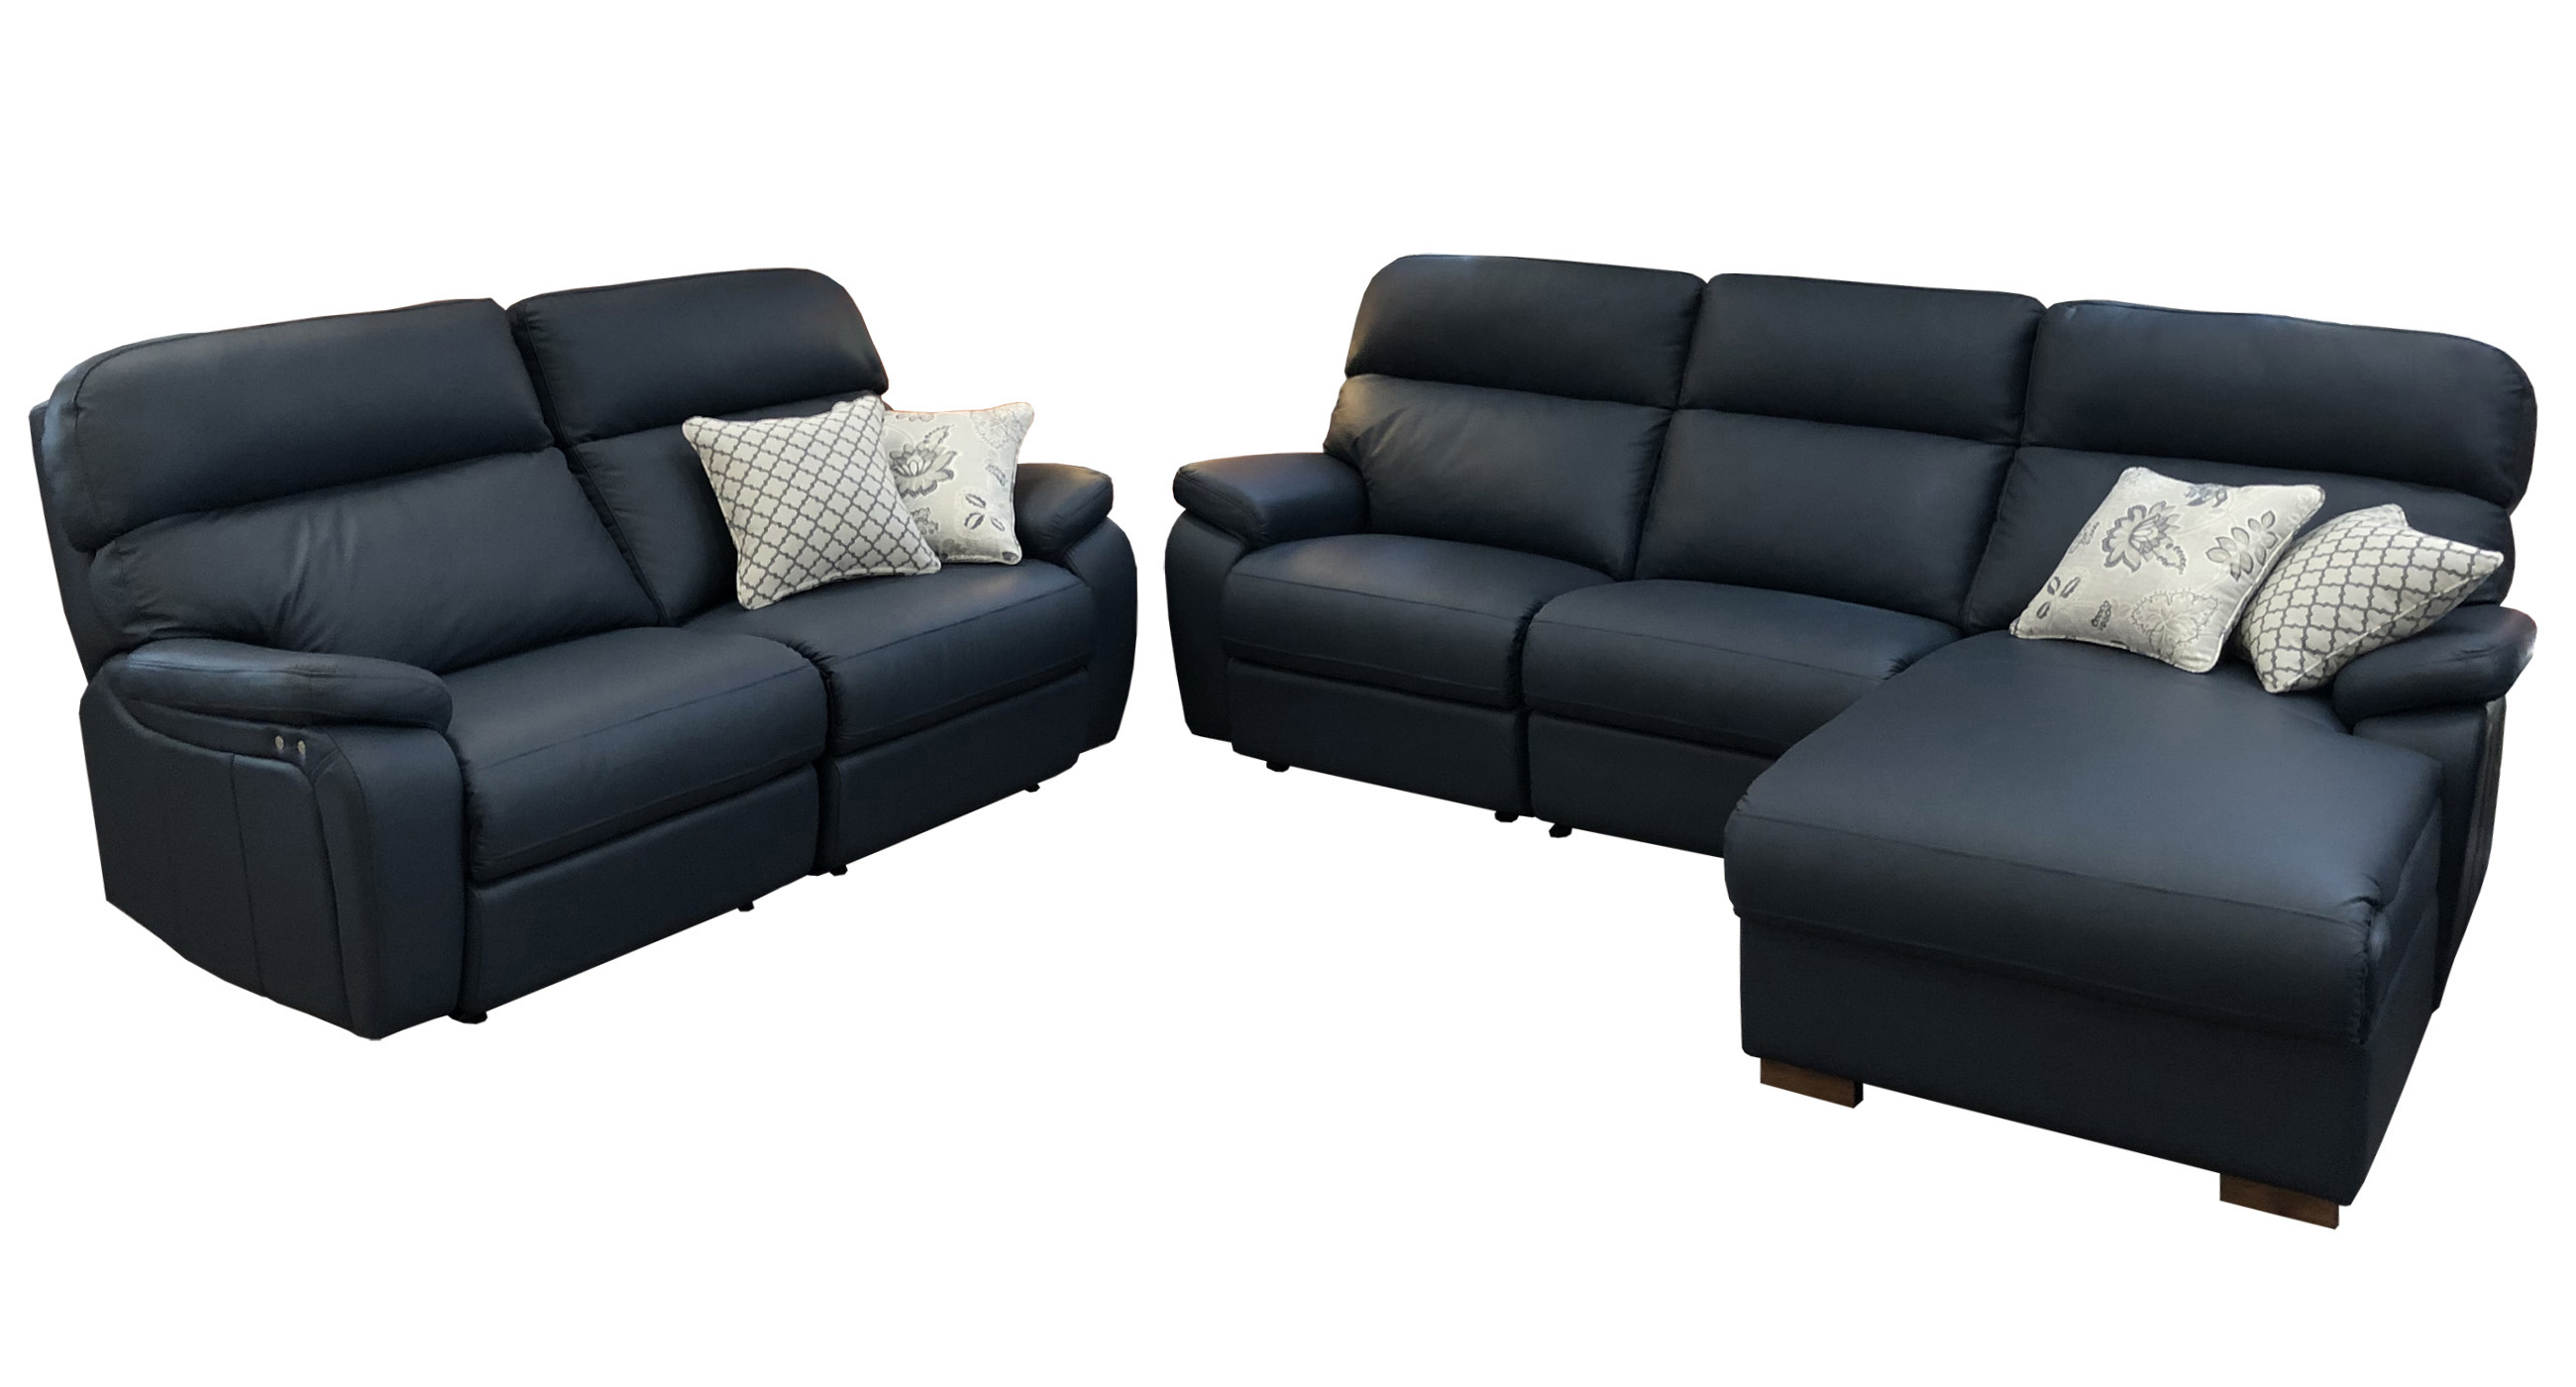 Sorrento Reclining Sofa and Chairs